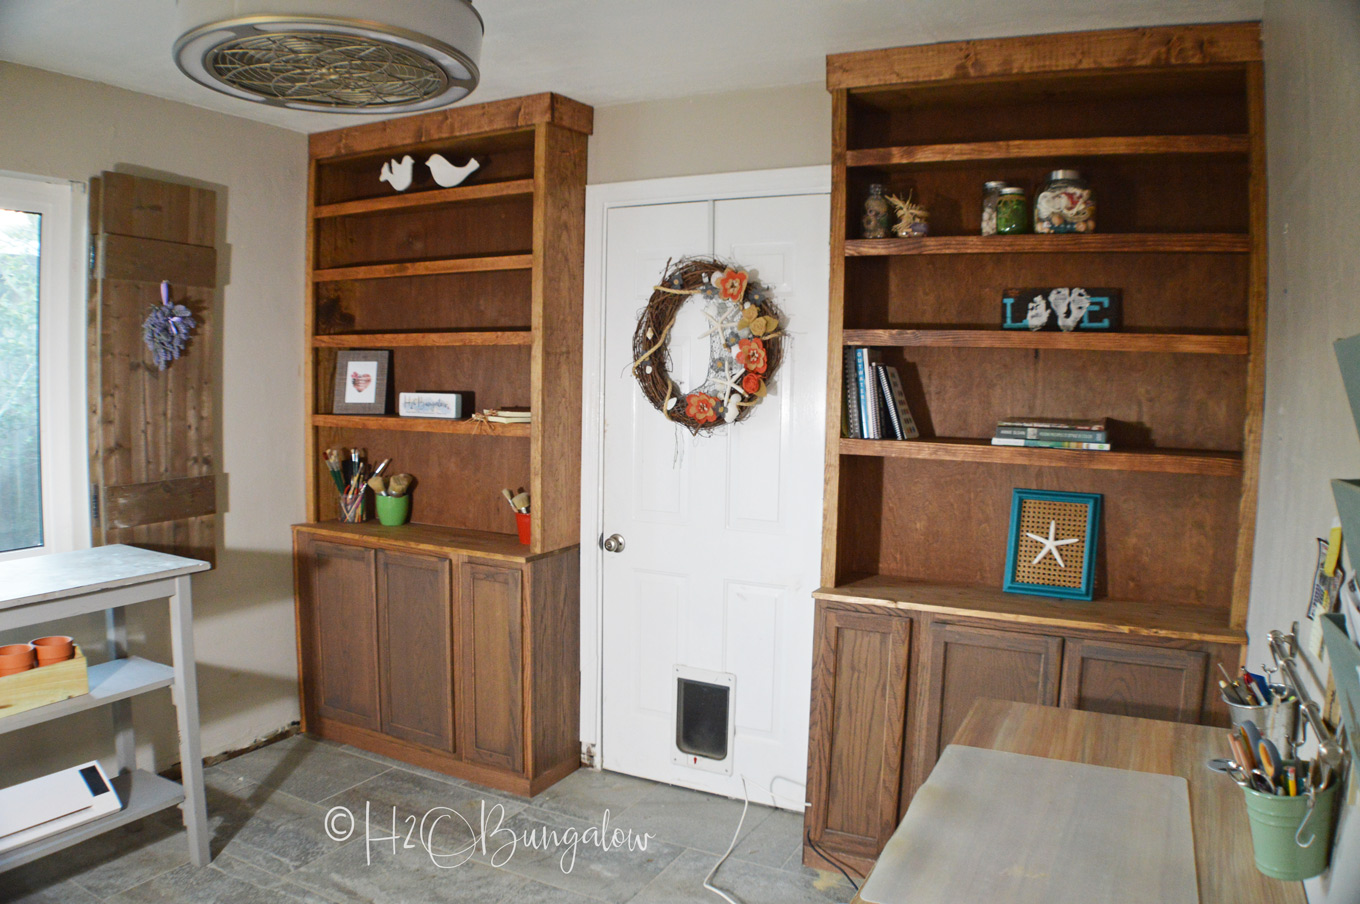 How To Build Built In Bookcases With Cabinets H2obungalow